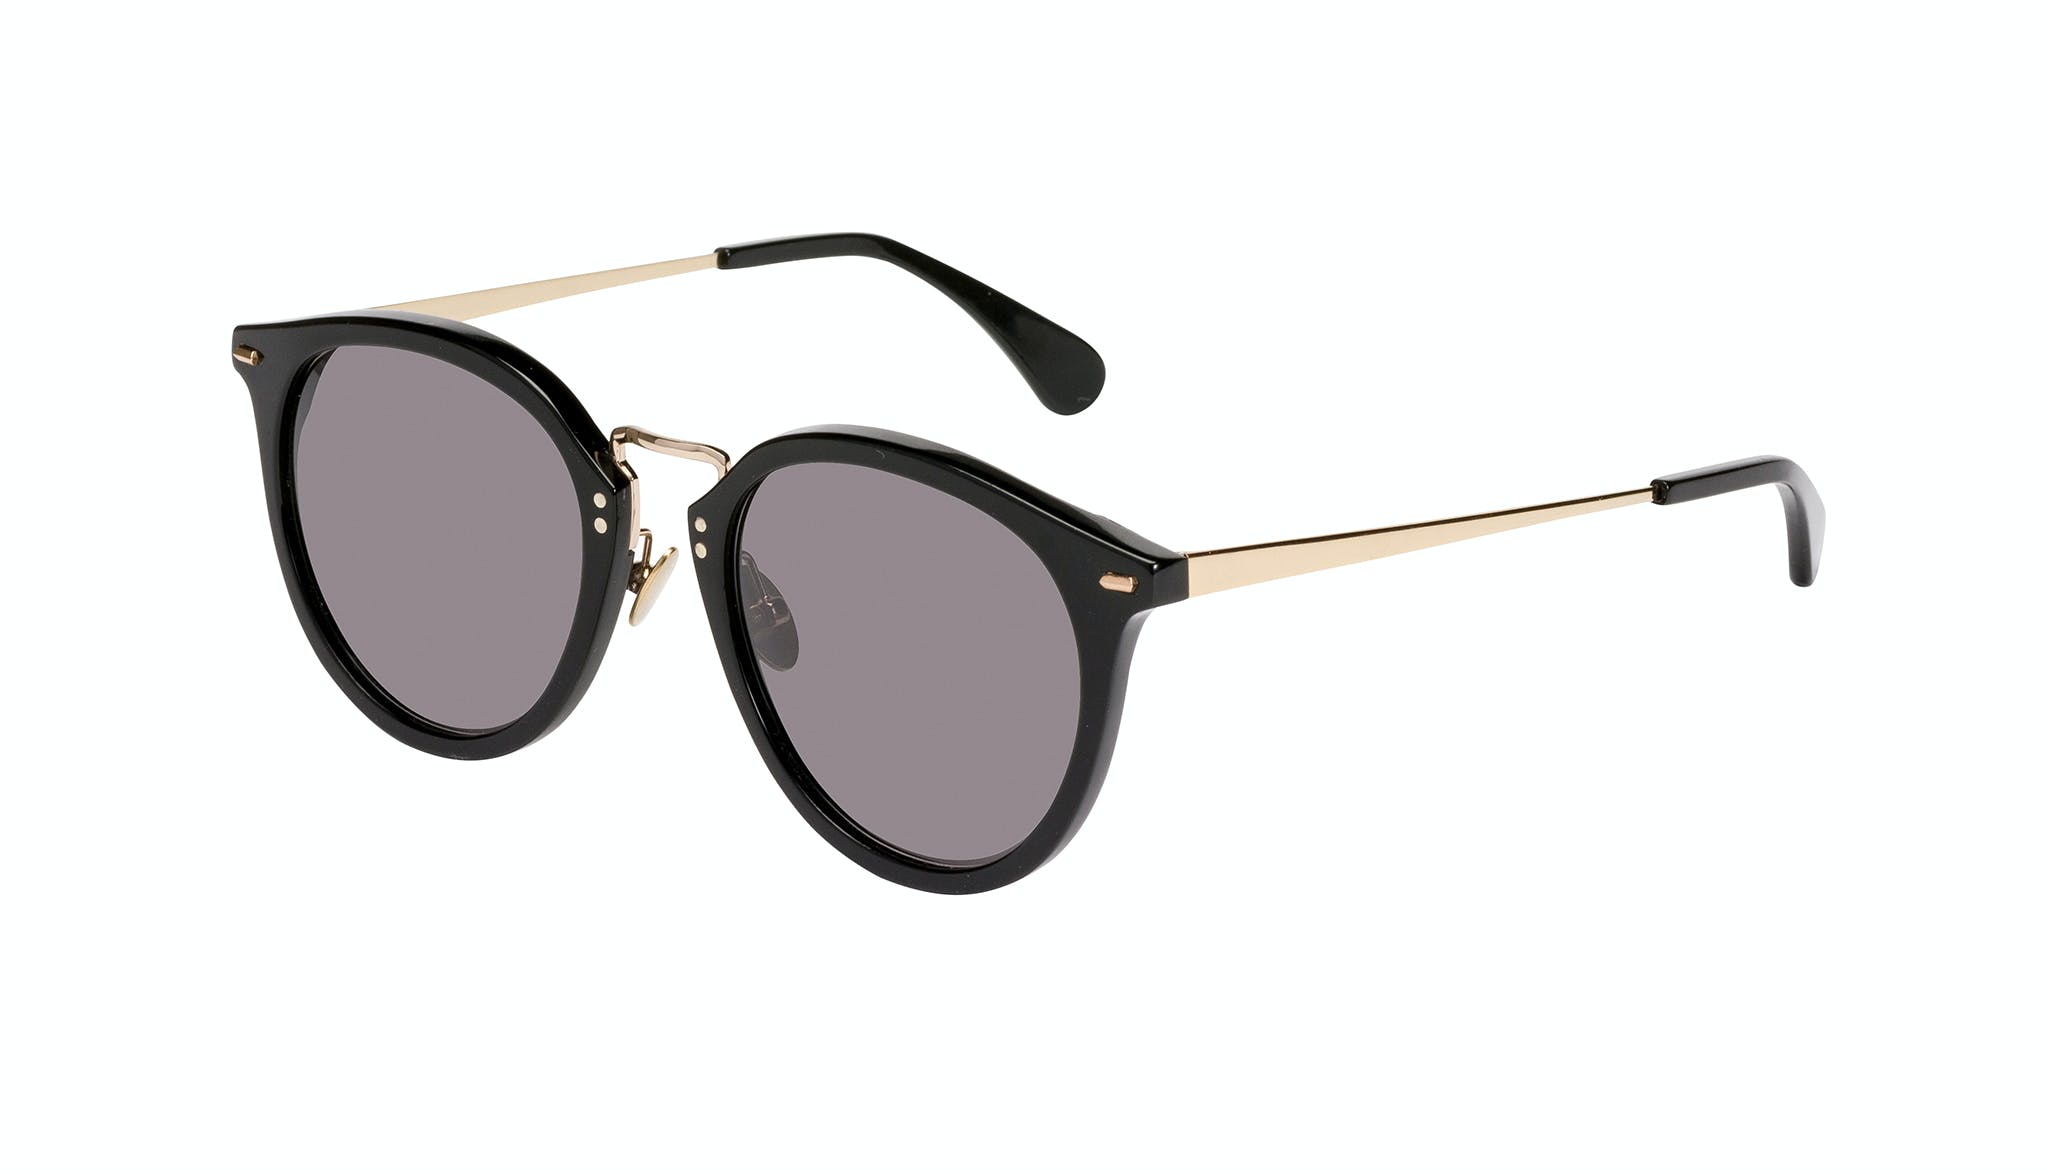 Affordable Fashion Glasses Round Sunglasses Women Poppy Ferris Tilt